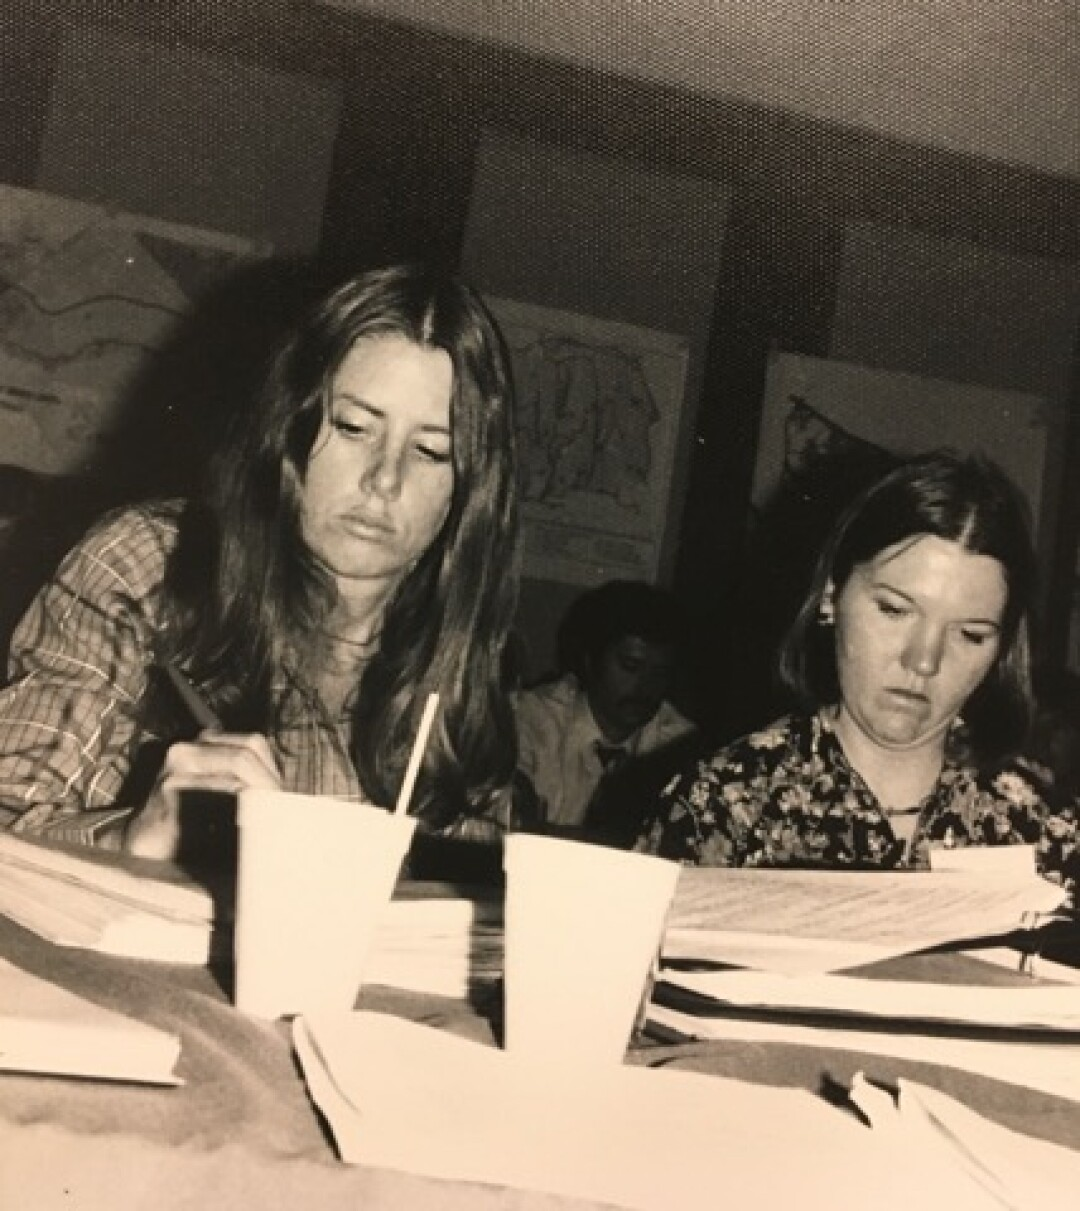 Susan Hansch, left, at a meeting in the 1970s with Charlotte Higgins, the coastal commission's press officer at the time.